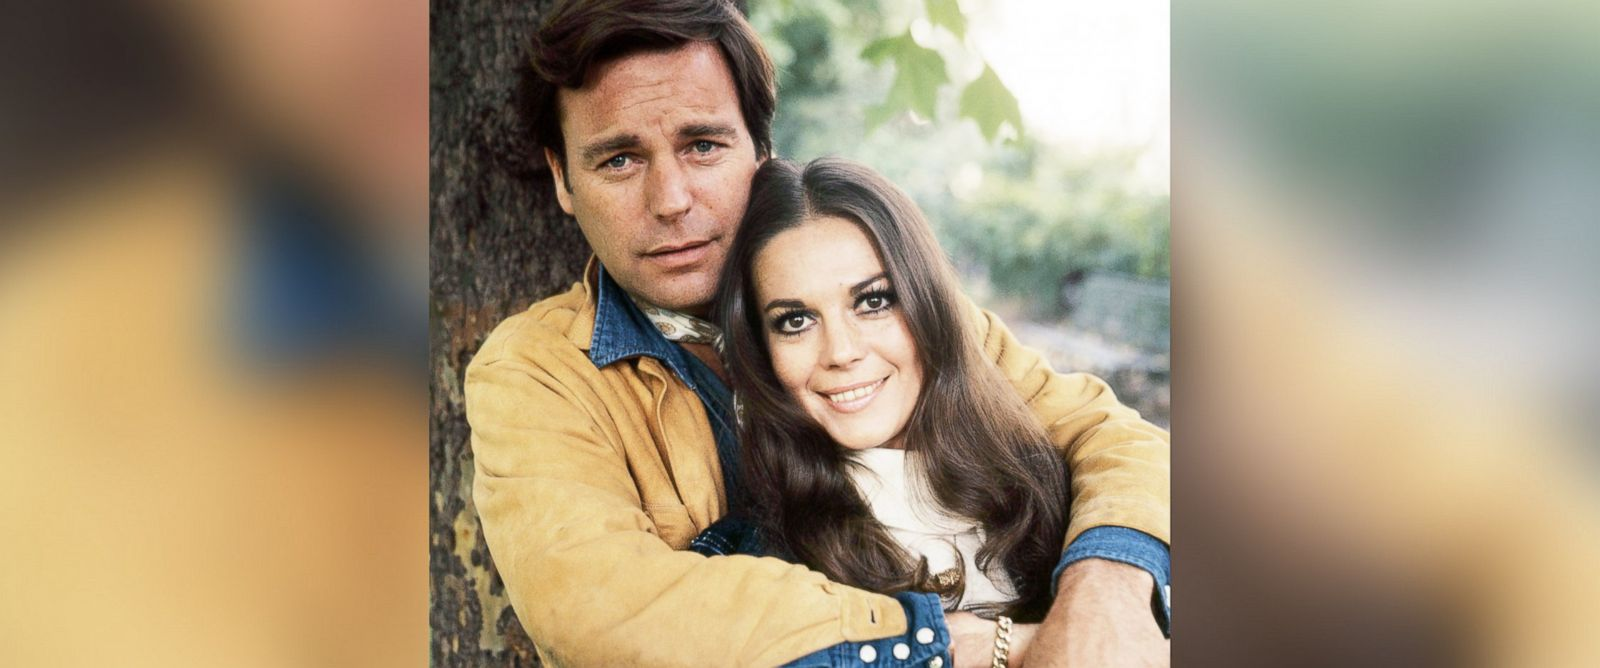 Robert Wagner HQ wallpapers